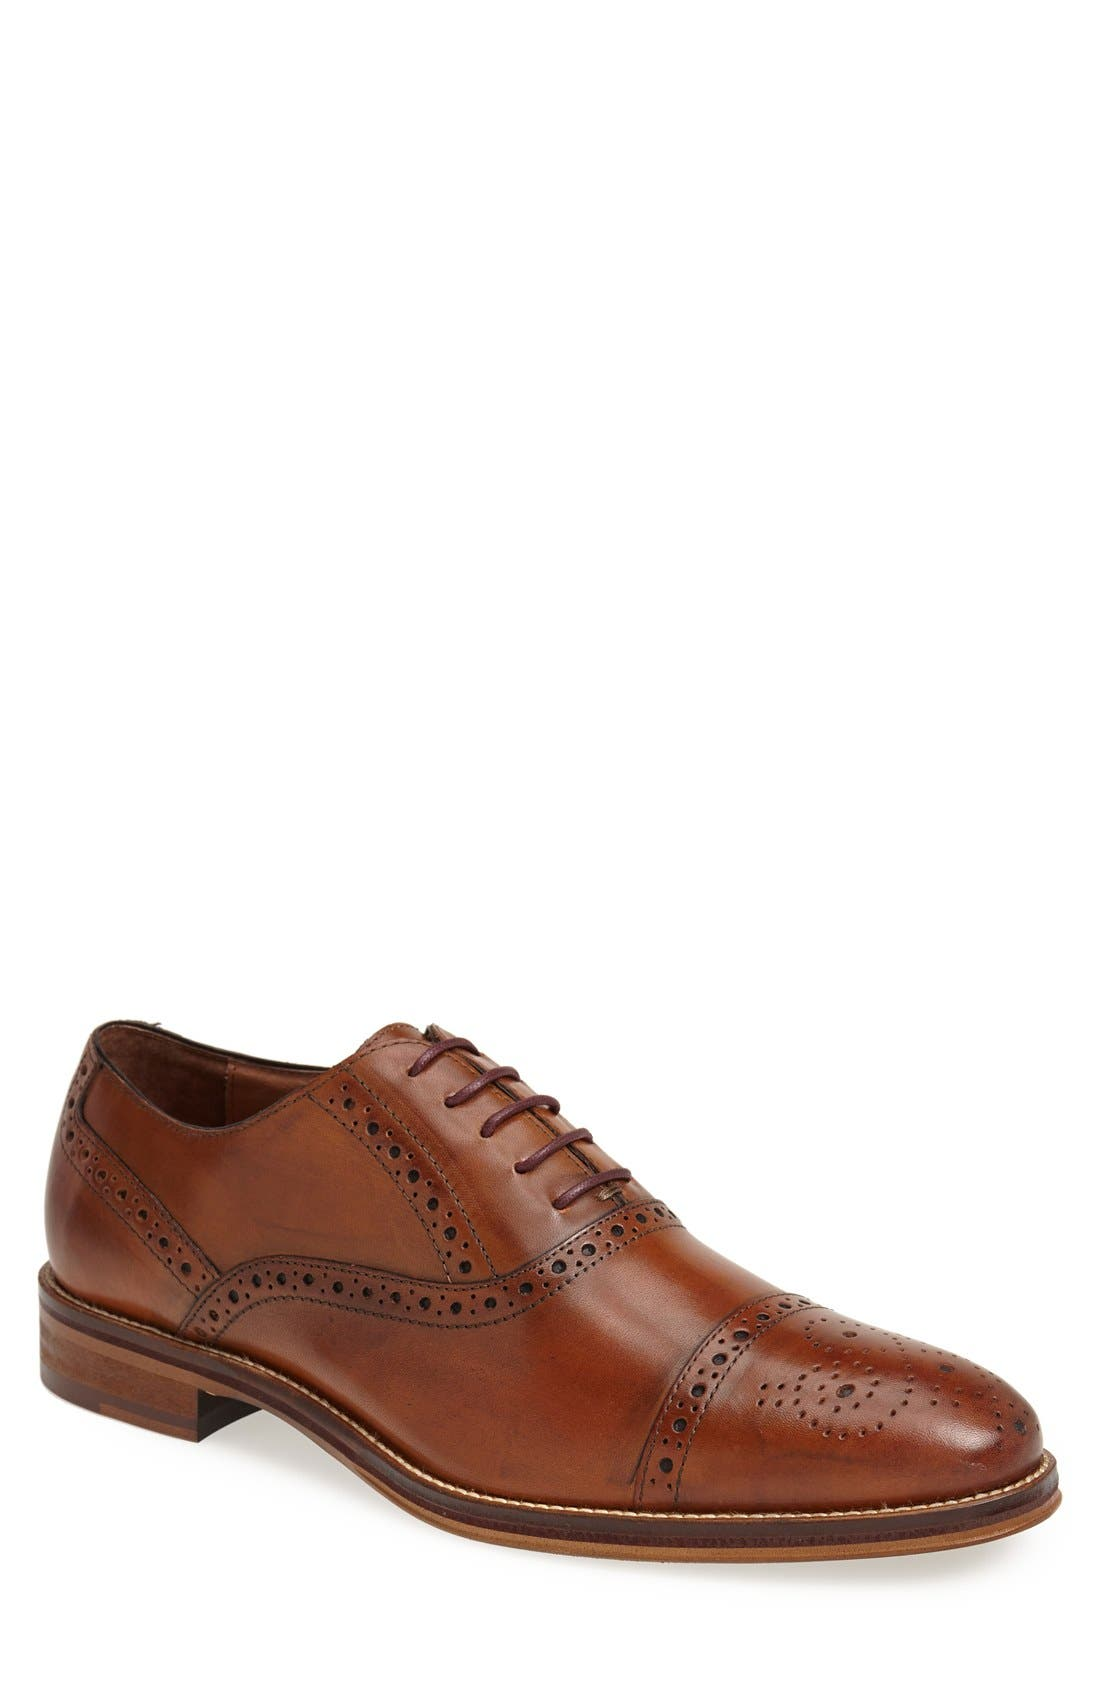 Alternate Image 1 Selected - Johnston & Murphy Conard Cap Toe Oxford (Men)